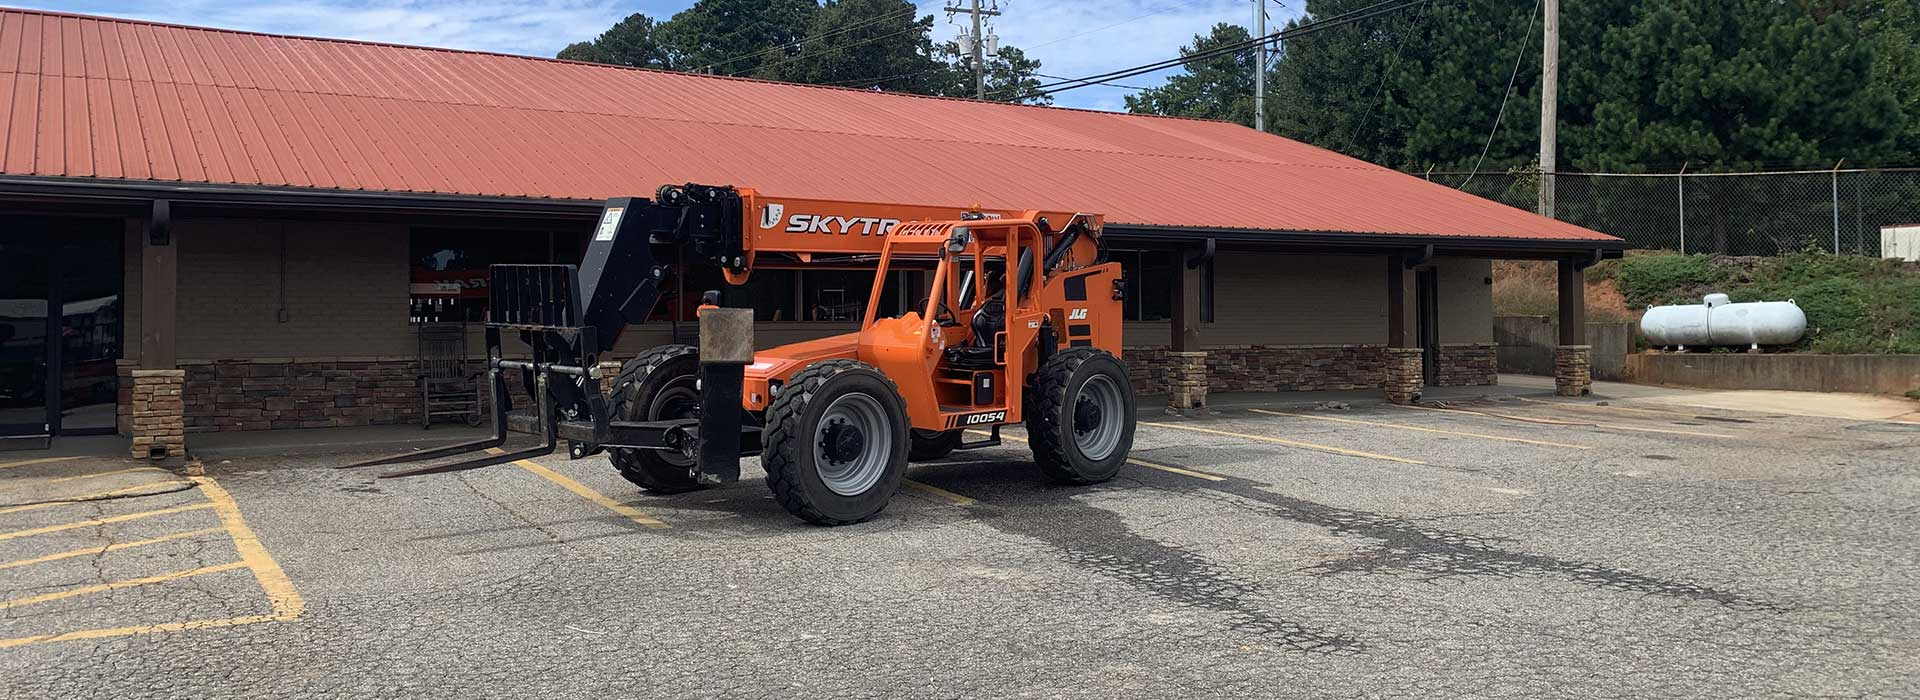 Large Equipment Rentals in Oakwood Georgia, Gainesville, Buford, Cumming, Cleveland, Cornelia GA